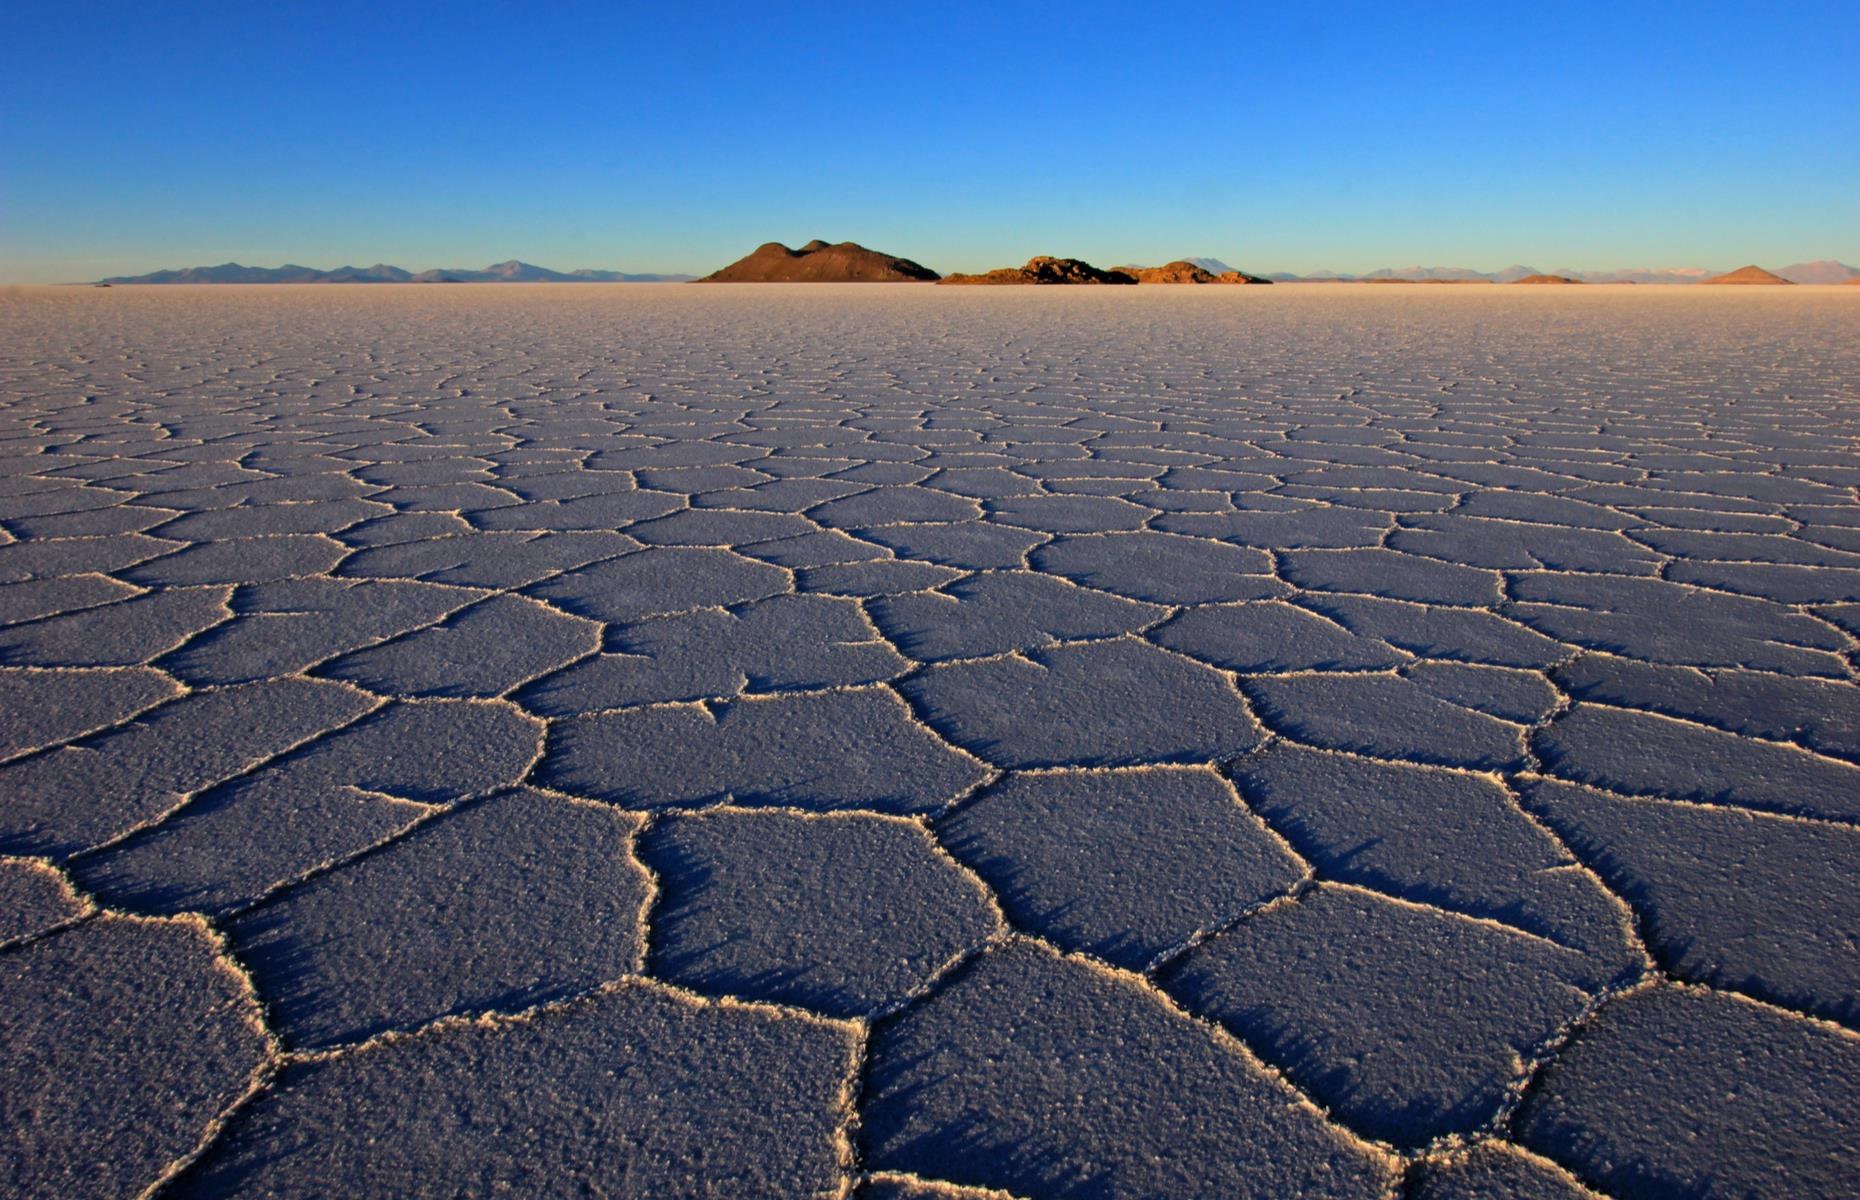 Slide 29 of 36: Salar de Uyuni in southwest Bolivia is the largest salt flats in the world. The high-altitude desert is an extraordinary sight: a crusty expanse of more than 4,600 square miles (12,000sq km) ringed by volcanoes. When the surface is dry, it looks like a patchwork of brilliant white and when wet, the blue sky and clouds above are reflected perfectly. But the salt flats are also resting on half of the world's lithium reserves.